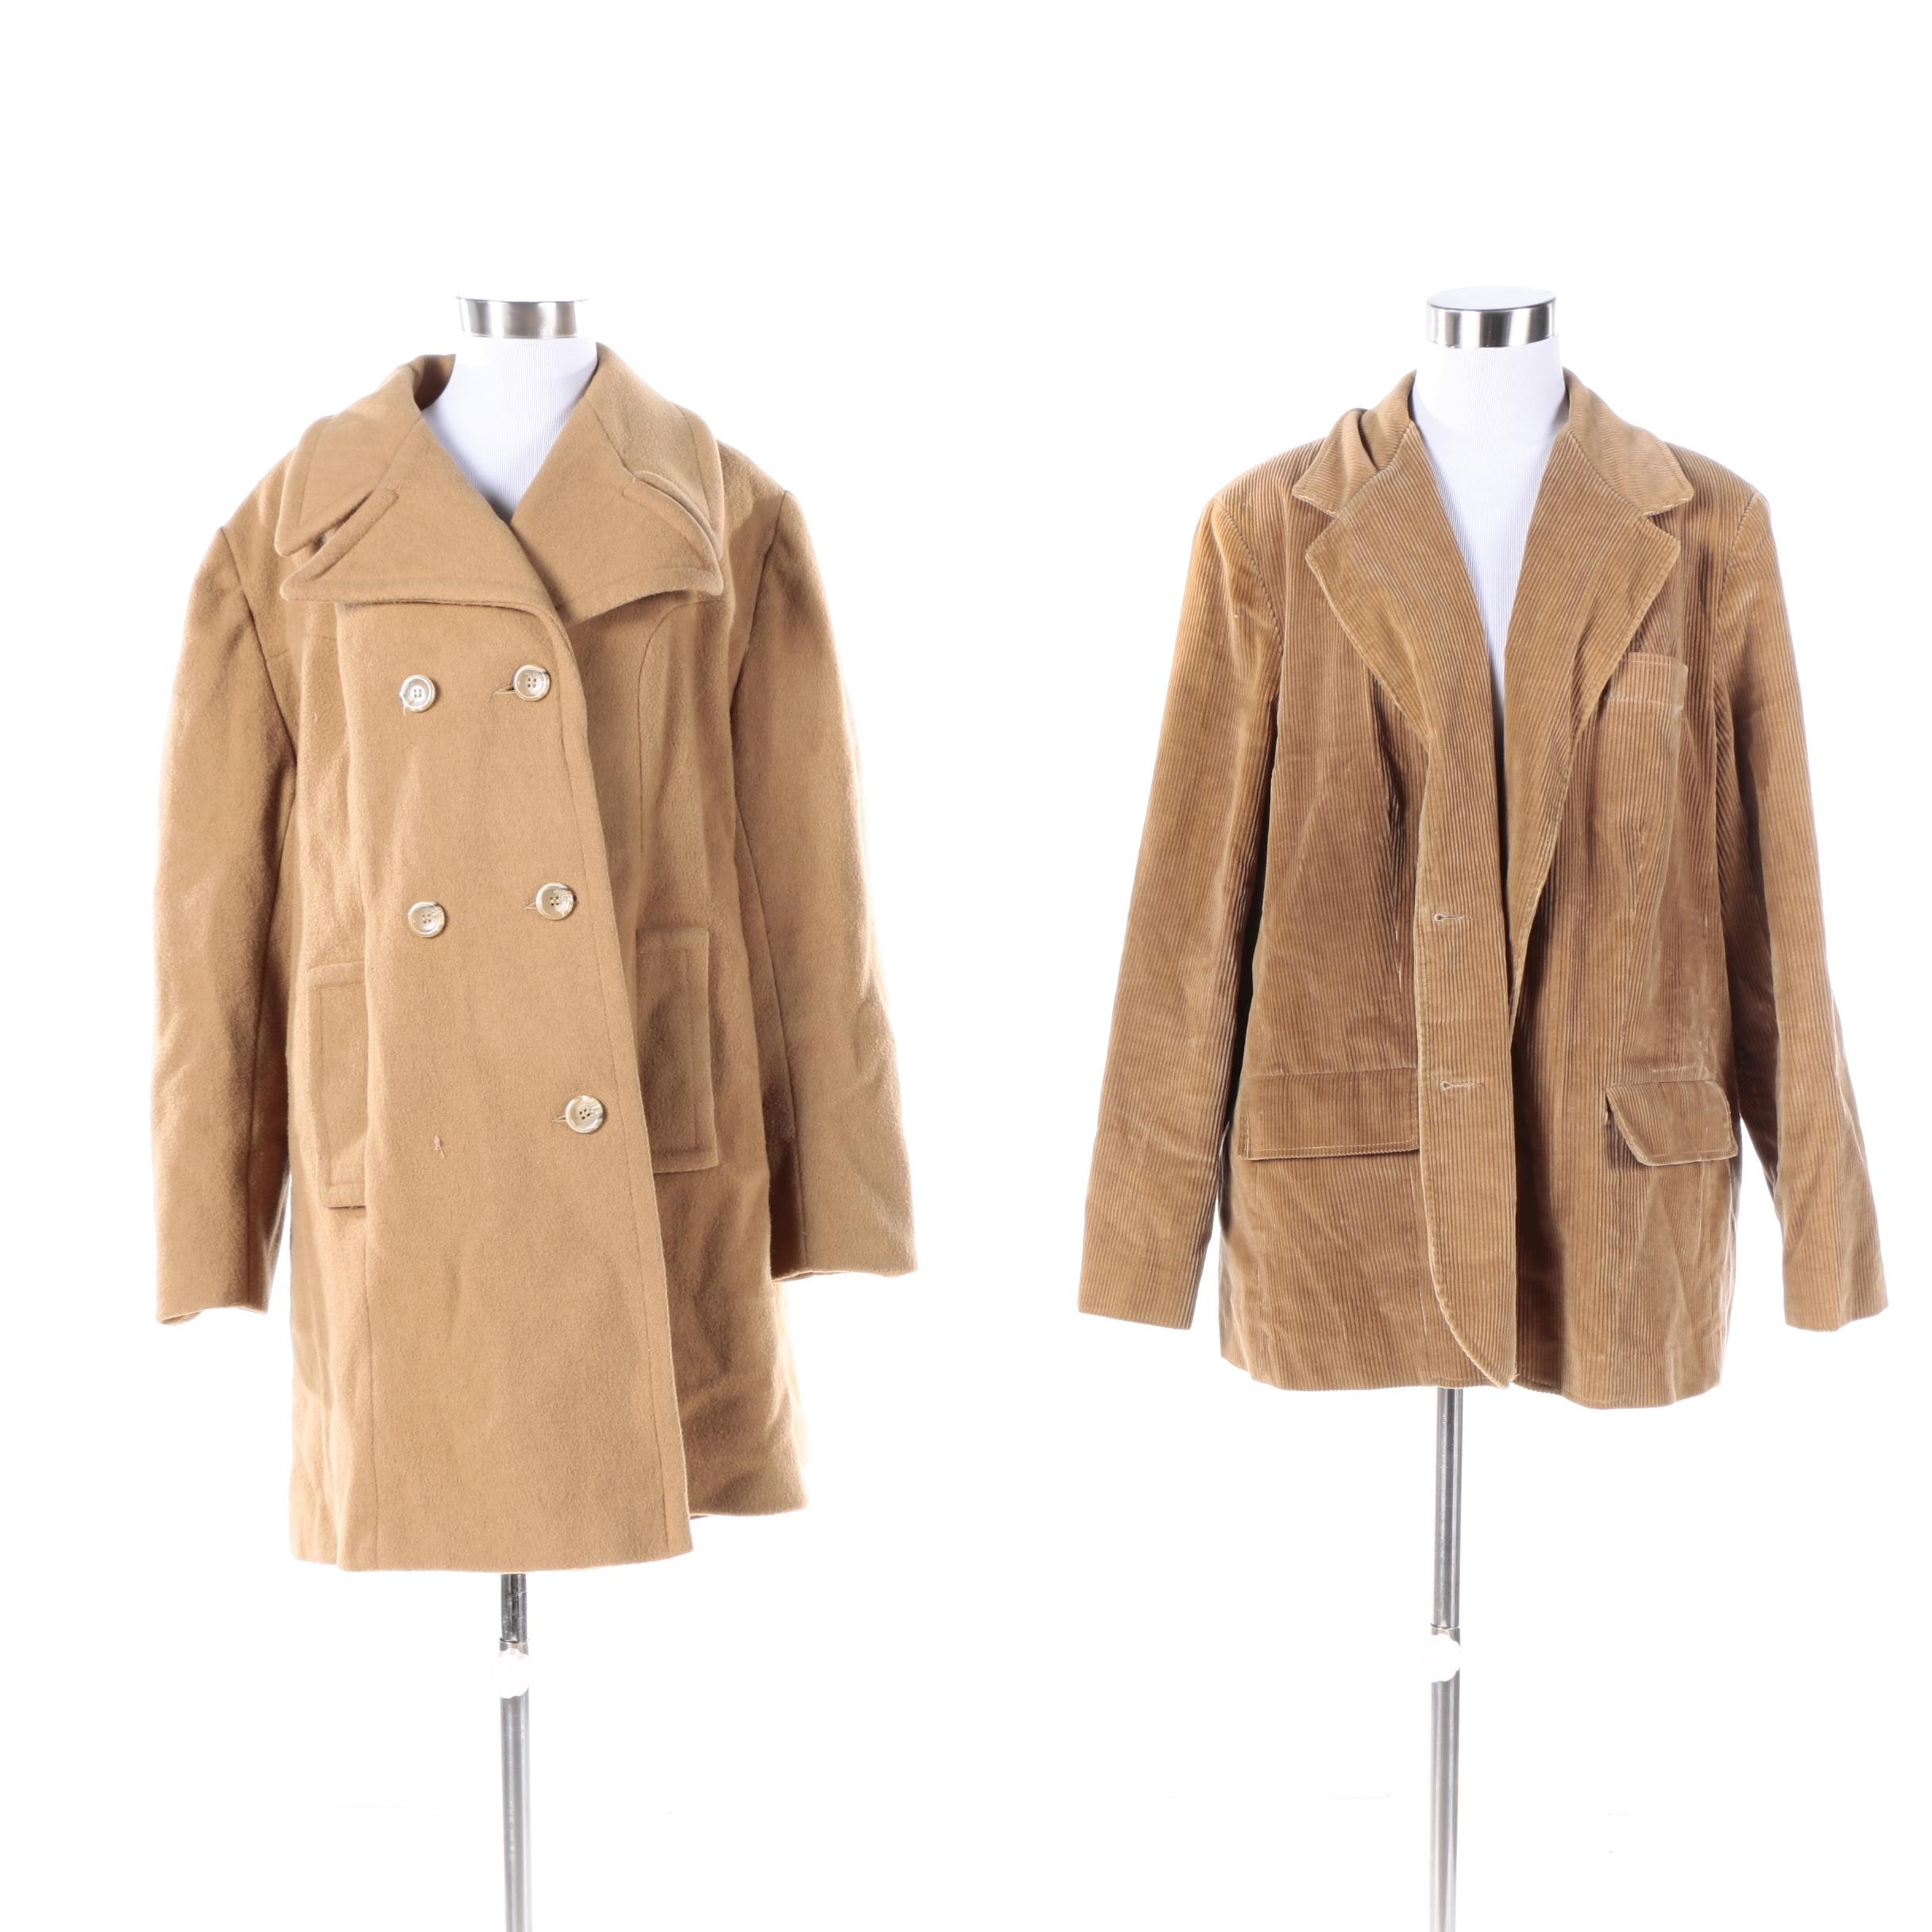 Women's Vintage Coatree Corduroy Jacket and Double-Breasted Wool Coat